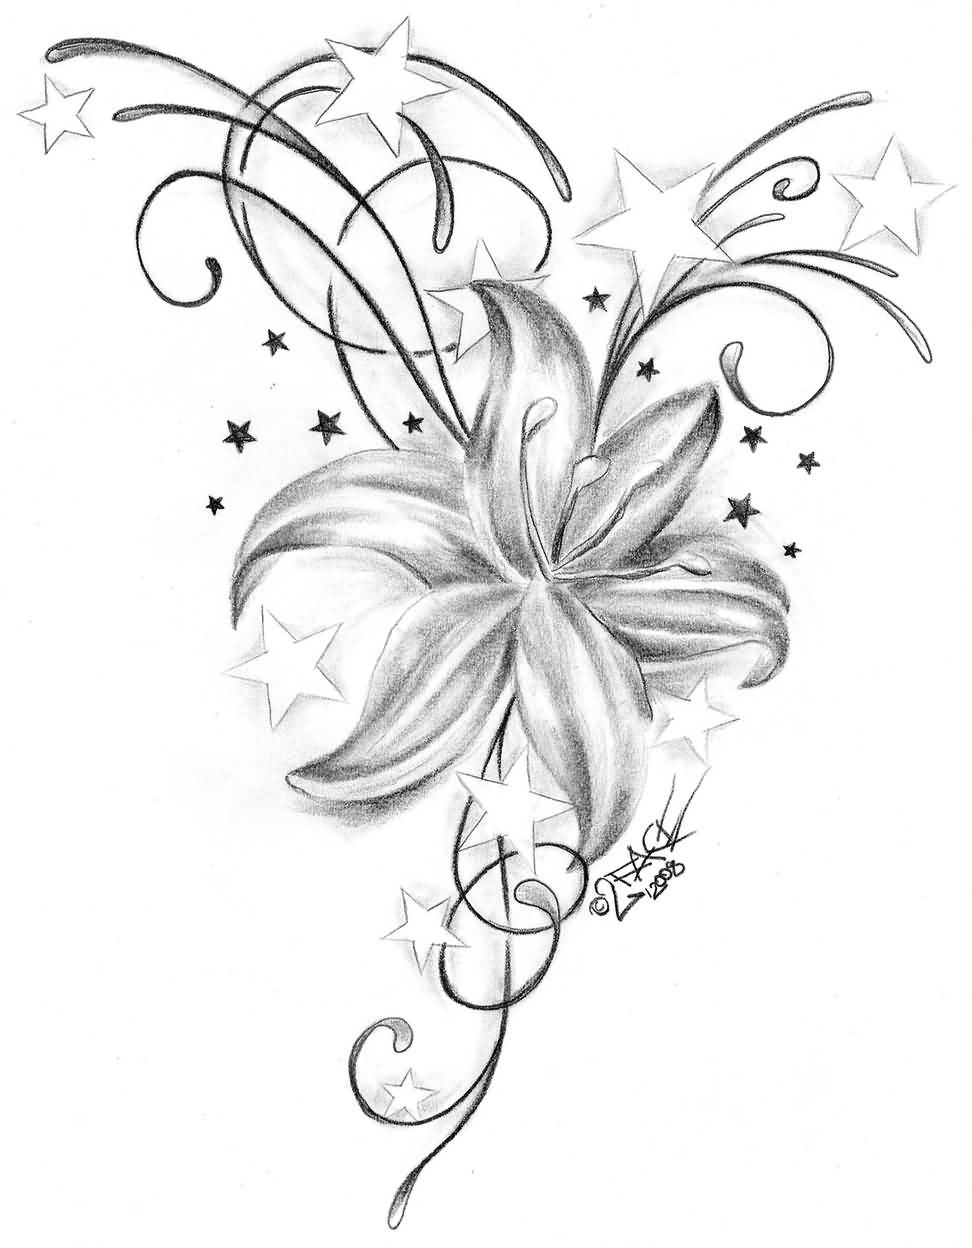 26 lily tattoos designs awesome outline stars and grey lily tattoo design izmirmasajfo